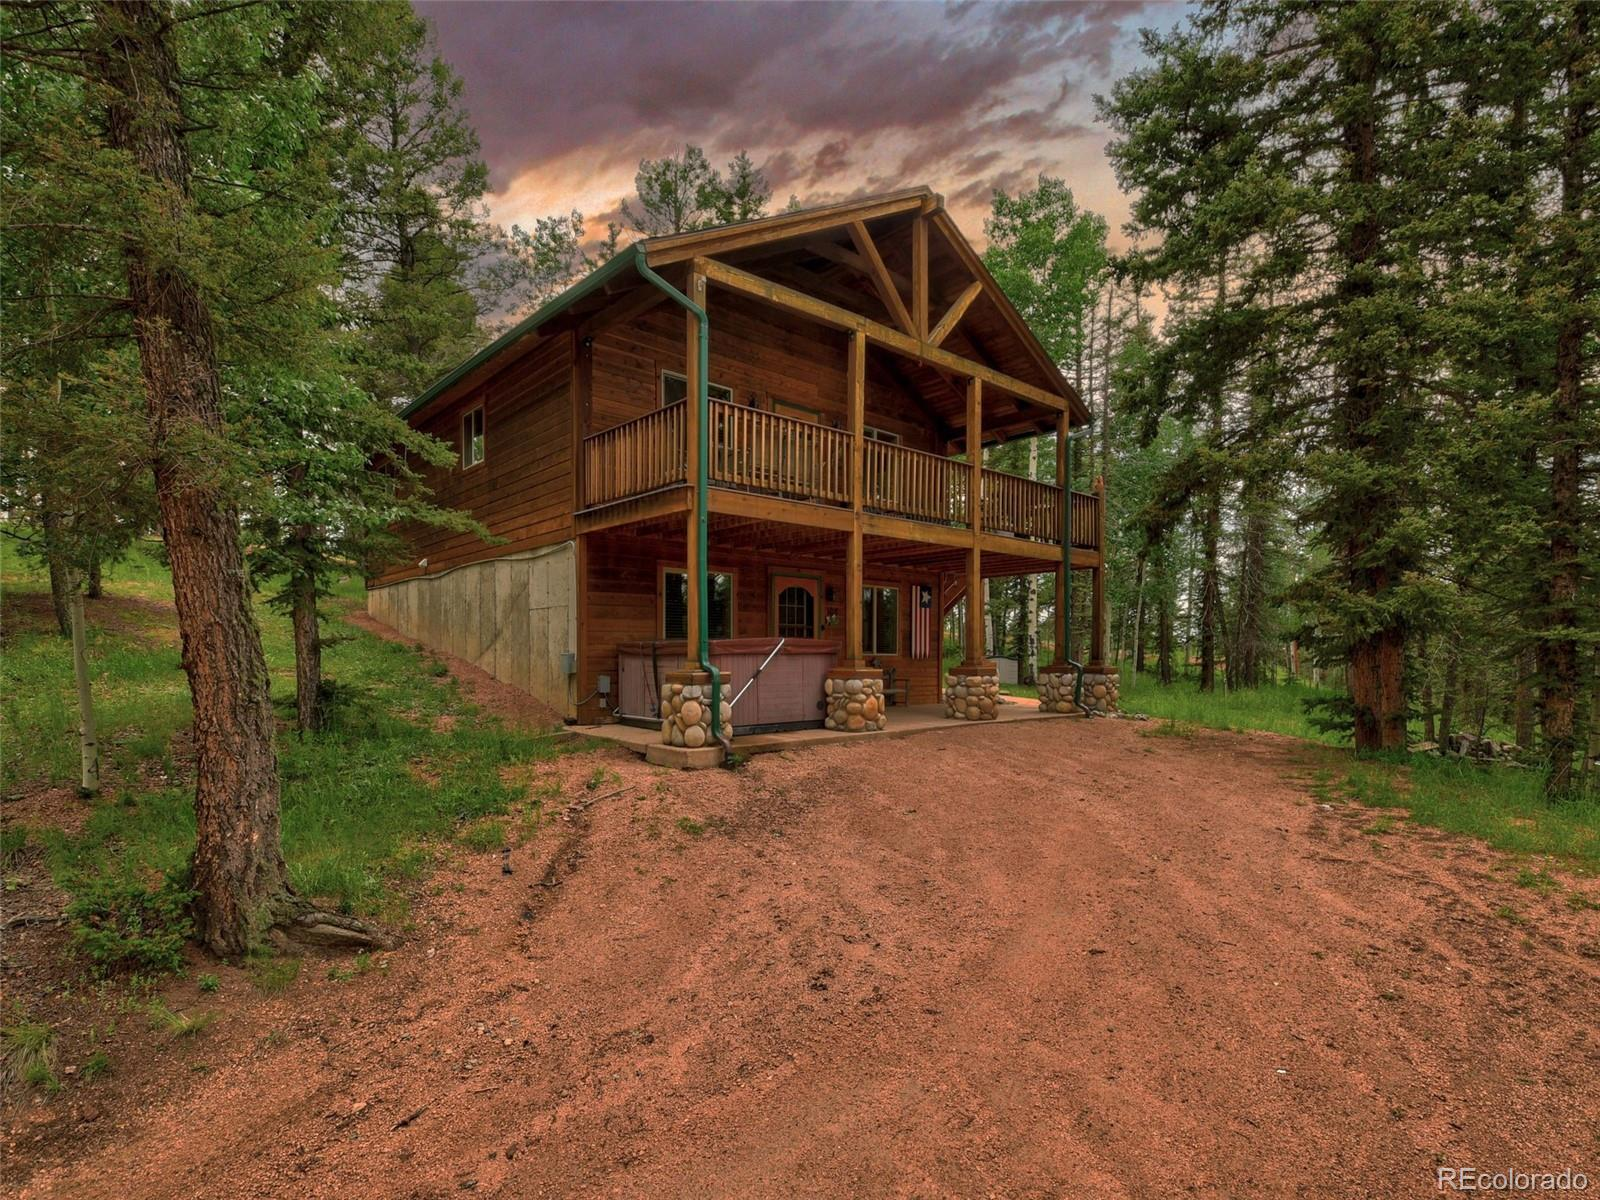 Amazing lakefront mountain cabin in the Heart of Colorado Mountain Estates. This property boasts of a double lot totalling in over 1 acre. The Magnuson Reservoir is right off the front of the property. A couple years ago, the dam broke and drained the reservoir, but the dam was repaired at the end of 2020. In the next year or so the reservoir will return to its former glory of being over 5 acres in size, stocked with fish. The cabin is almost 1600 sq/ft with 3 bedrooms and 2 bathrooms. The main level has a beautiful great room with vaulted ceilings, a beautiful kitchen and dining area. Right off the great room there is a large covered trex deck that looks out on the reservoir. There are two bedrooms on the main level with one bathroom. The basement has a large family room, and an additional bedroom and bathroom. Throughout this home you will notice amazing woodwork from the amazing bears on the deck, to the custom cutouts above each room. This property has been used as a Short Term Rental property sleeping up to 13 people. This is an amazing property you won't want to miss out.